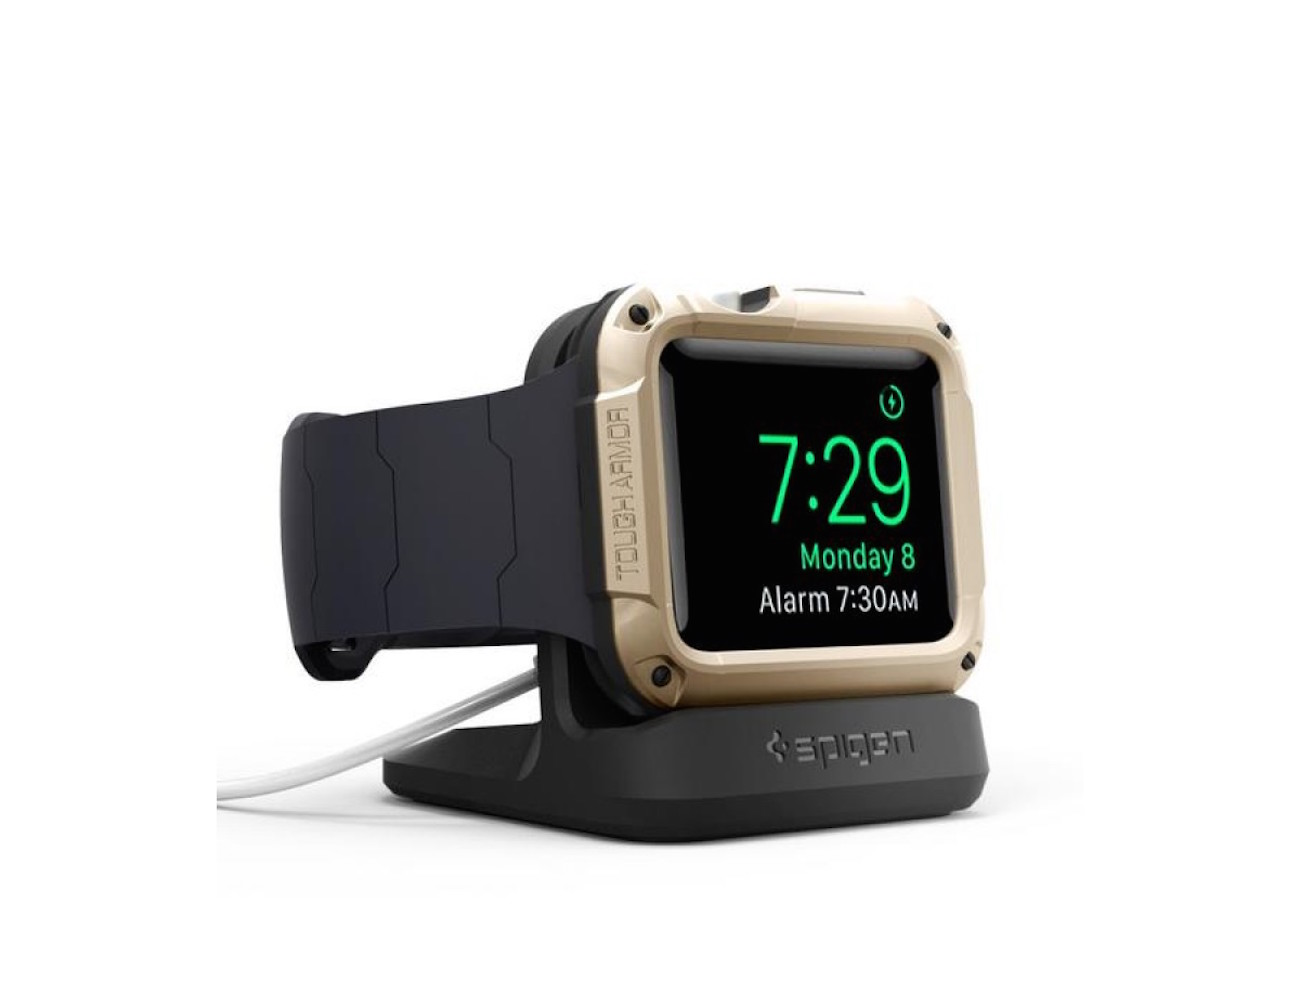 Spigen's S350 Apple Watch Stand – Made Entirely of Scratch-Free TPU